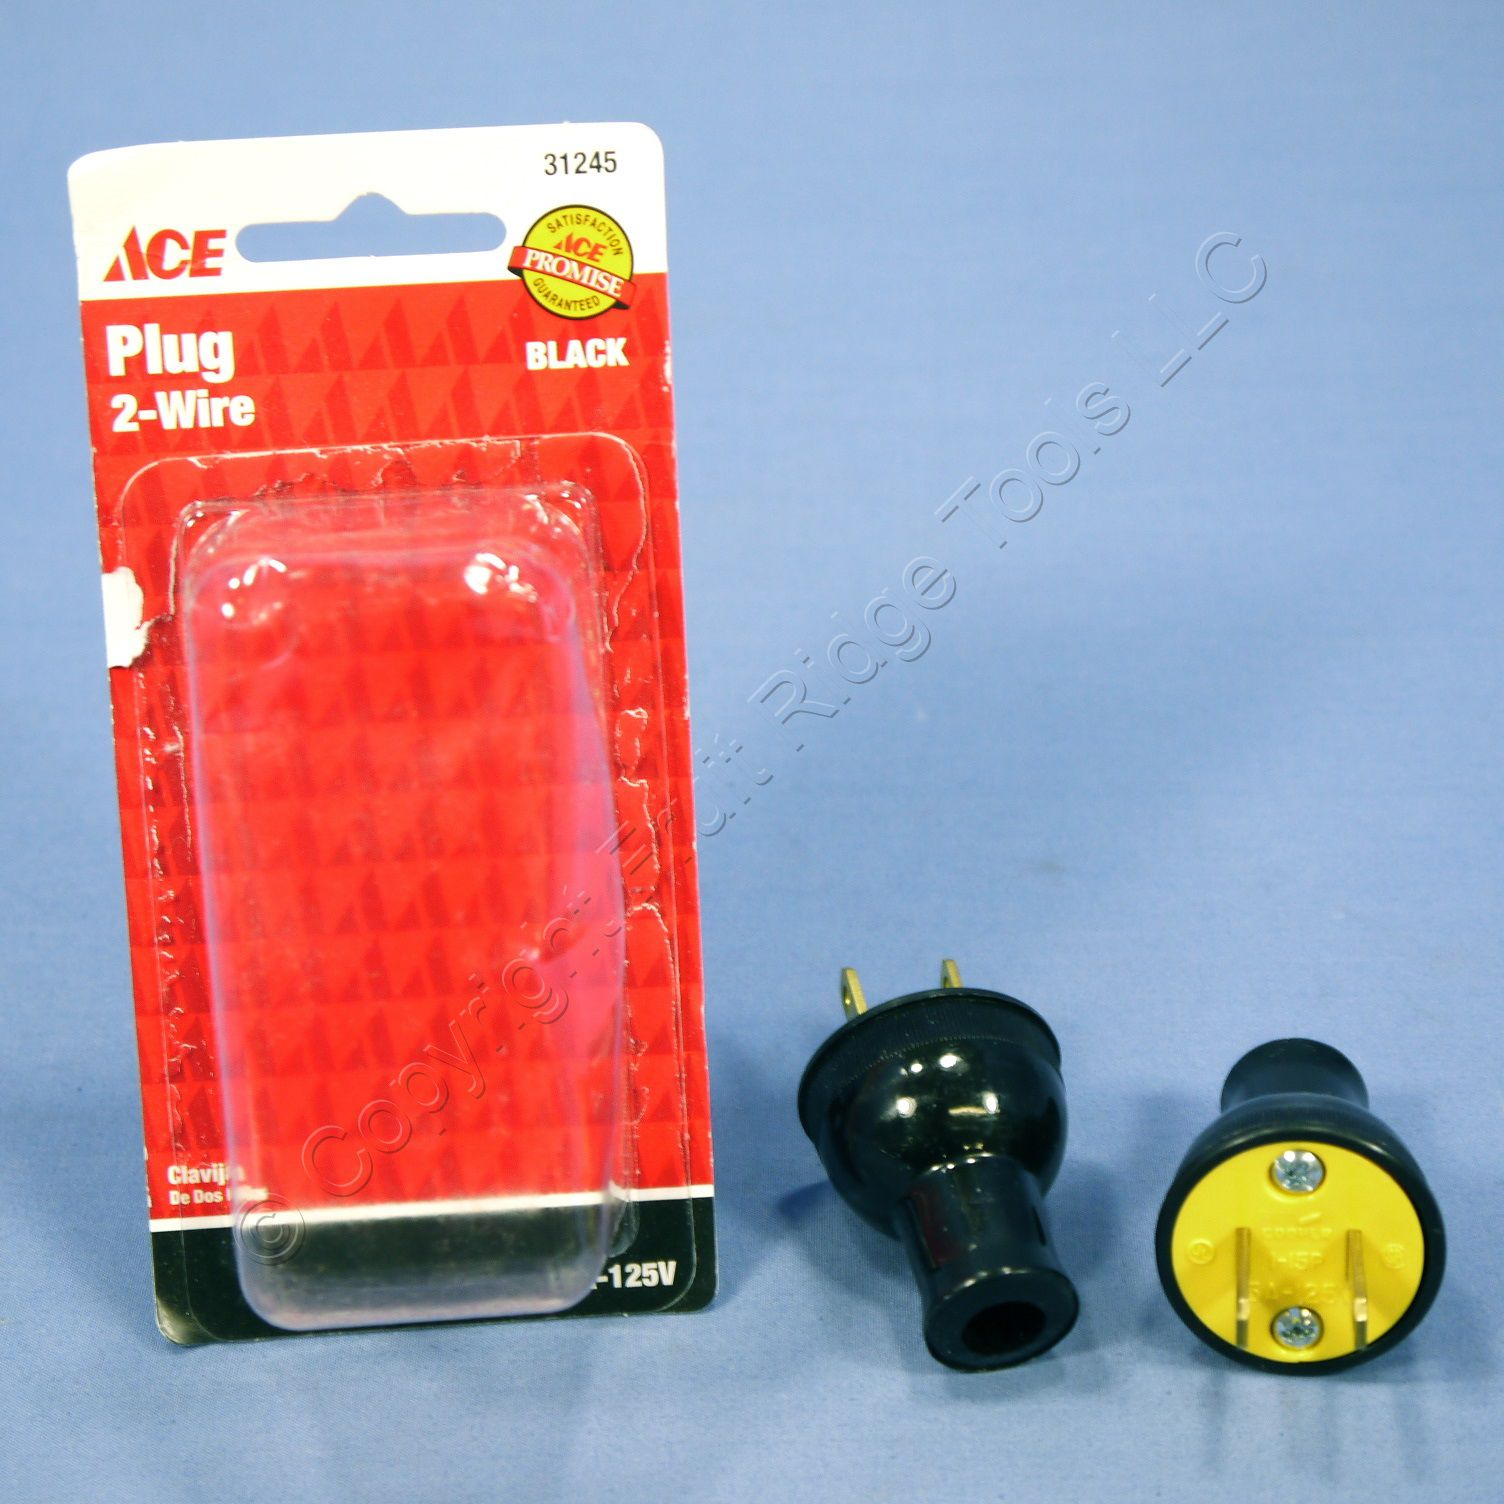 2 Ace Black Straight Blade Easy Grip Plug NEMA 1-15 15A 125V 31245